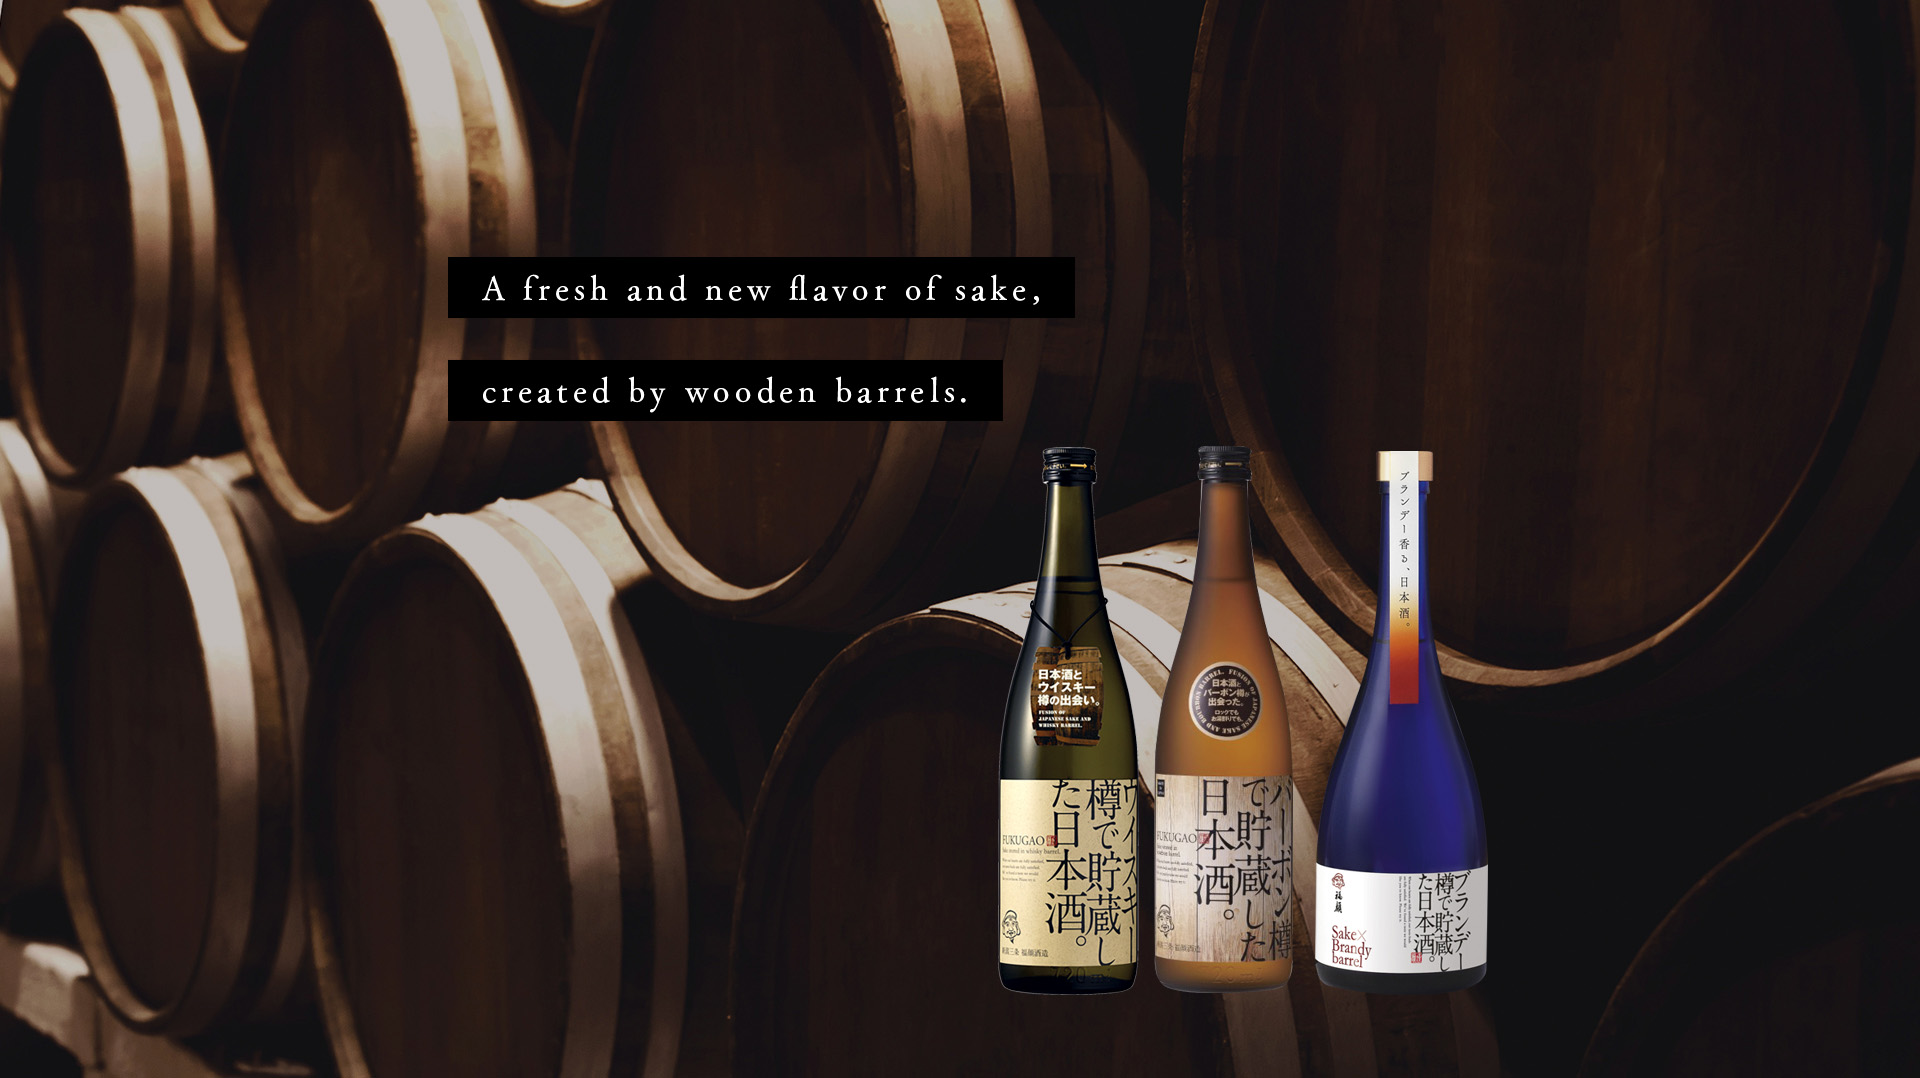 A fresh and new flavor of sake, created by wooden barrels.